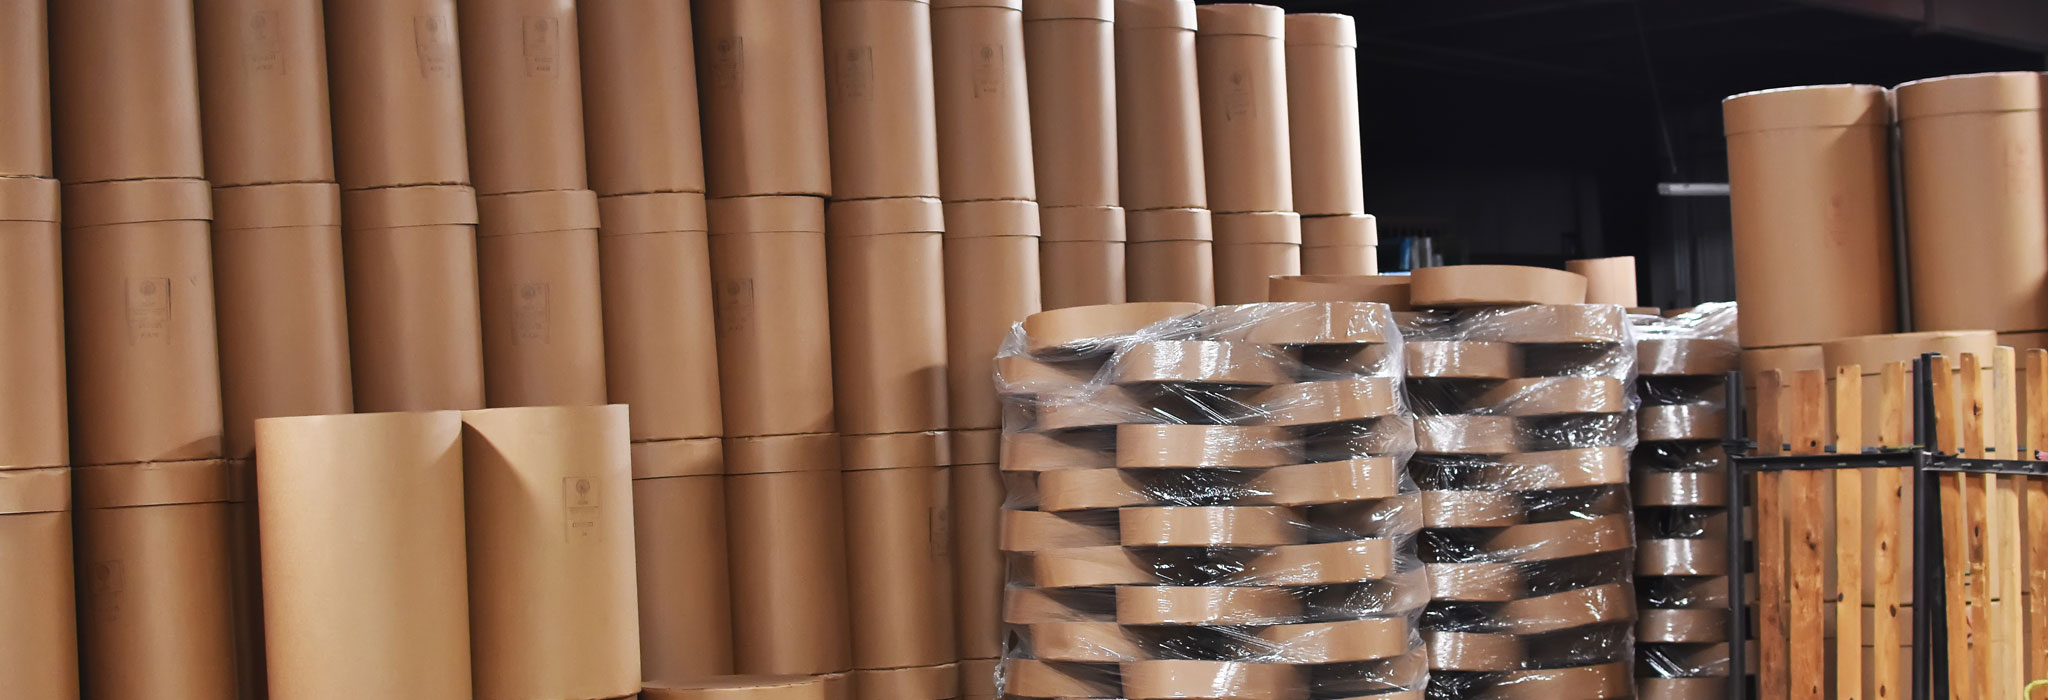 fibre barrels with plastic wrap ready to ship to customers The Master Package Fibre Shipping Containers